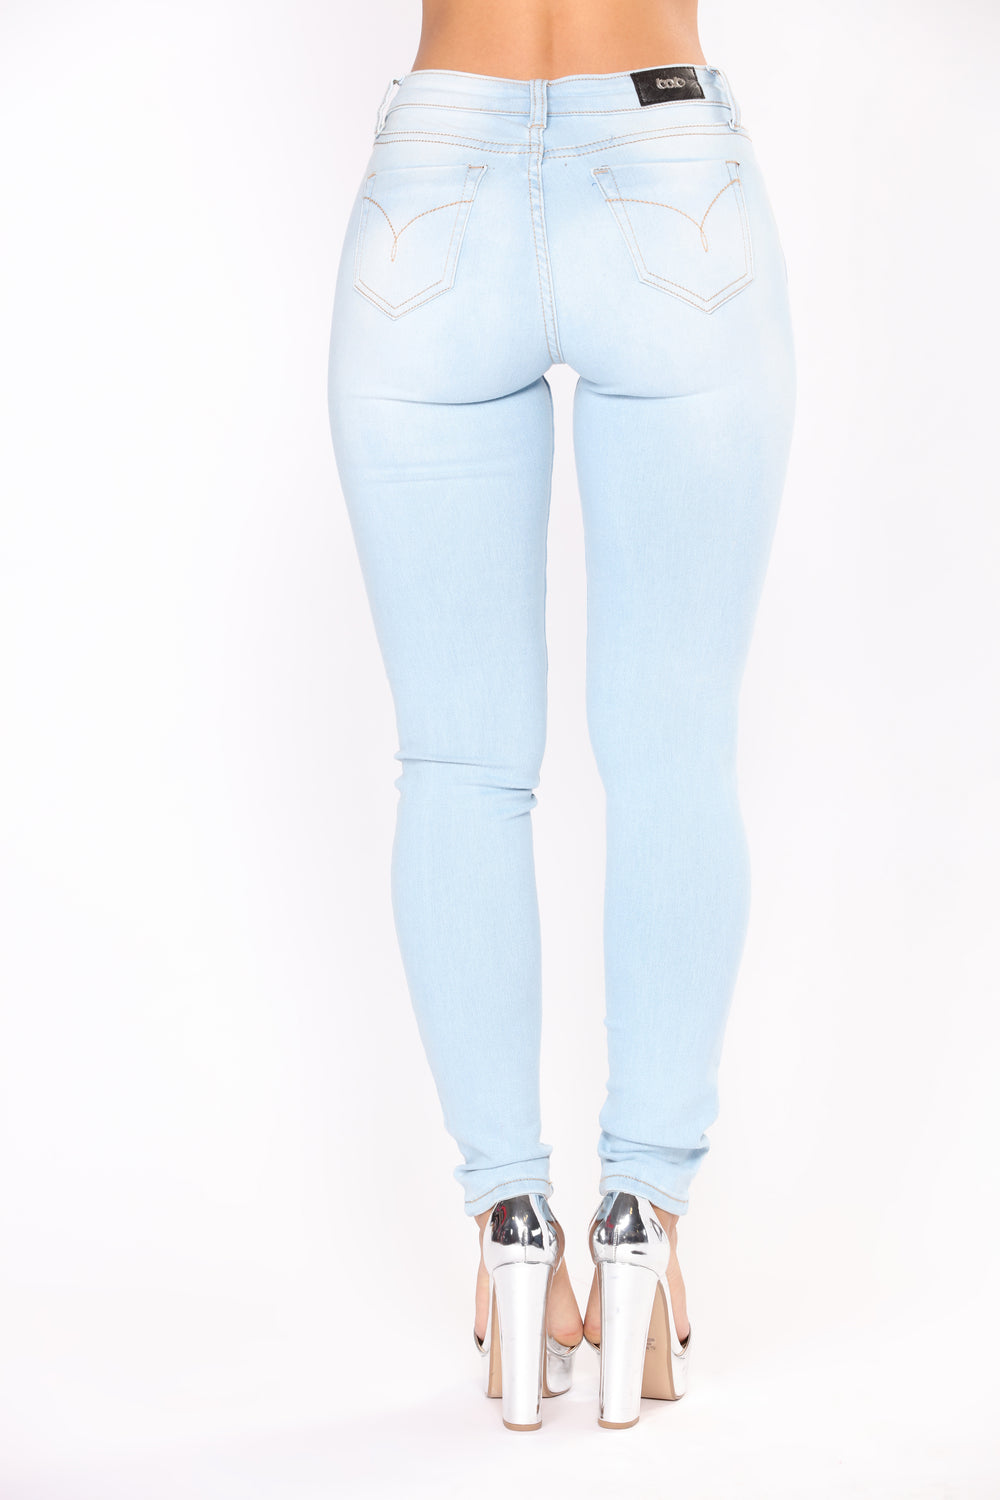 Peachy Beachy Skinny Jeans - Light